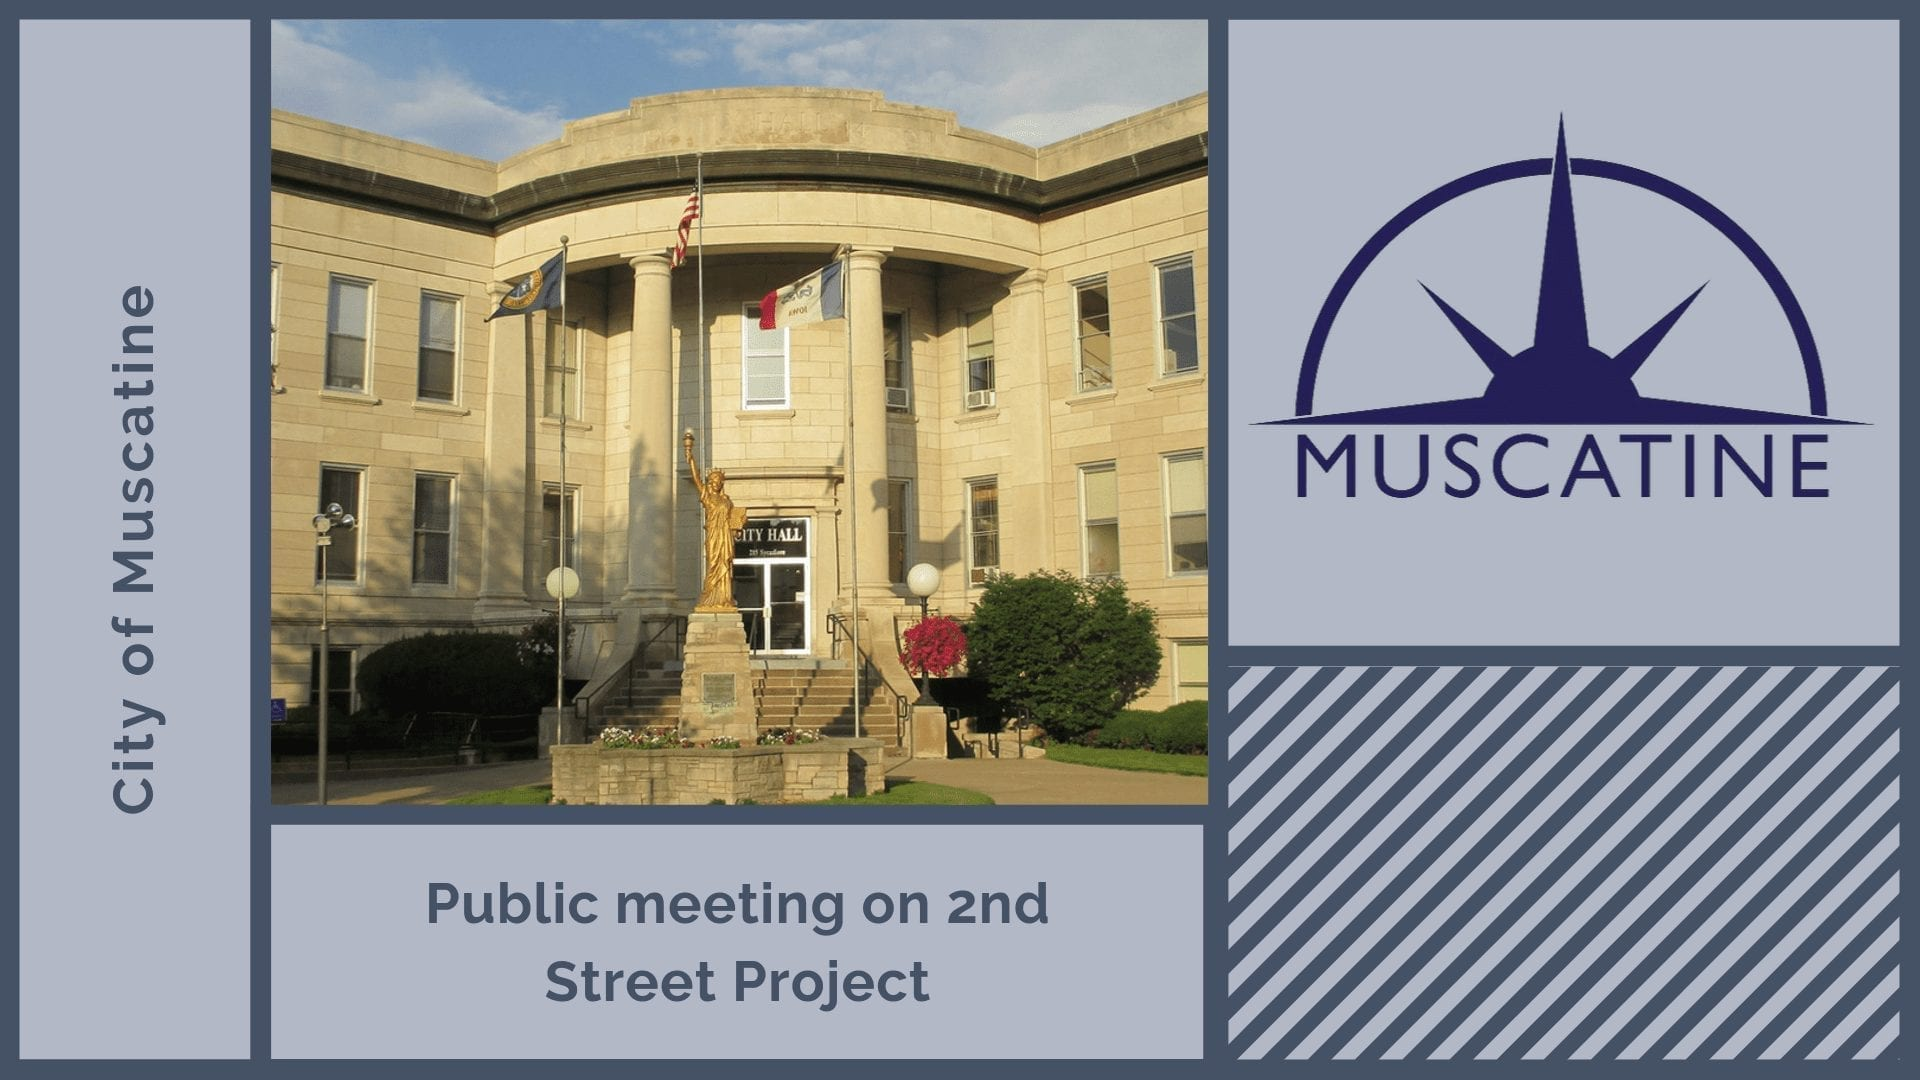 Public meeting on 2nd Street Project